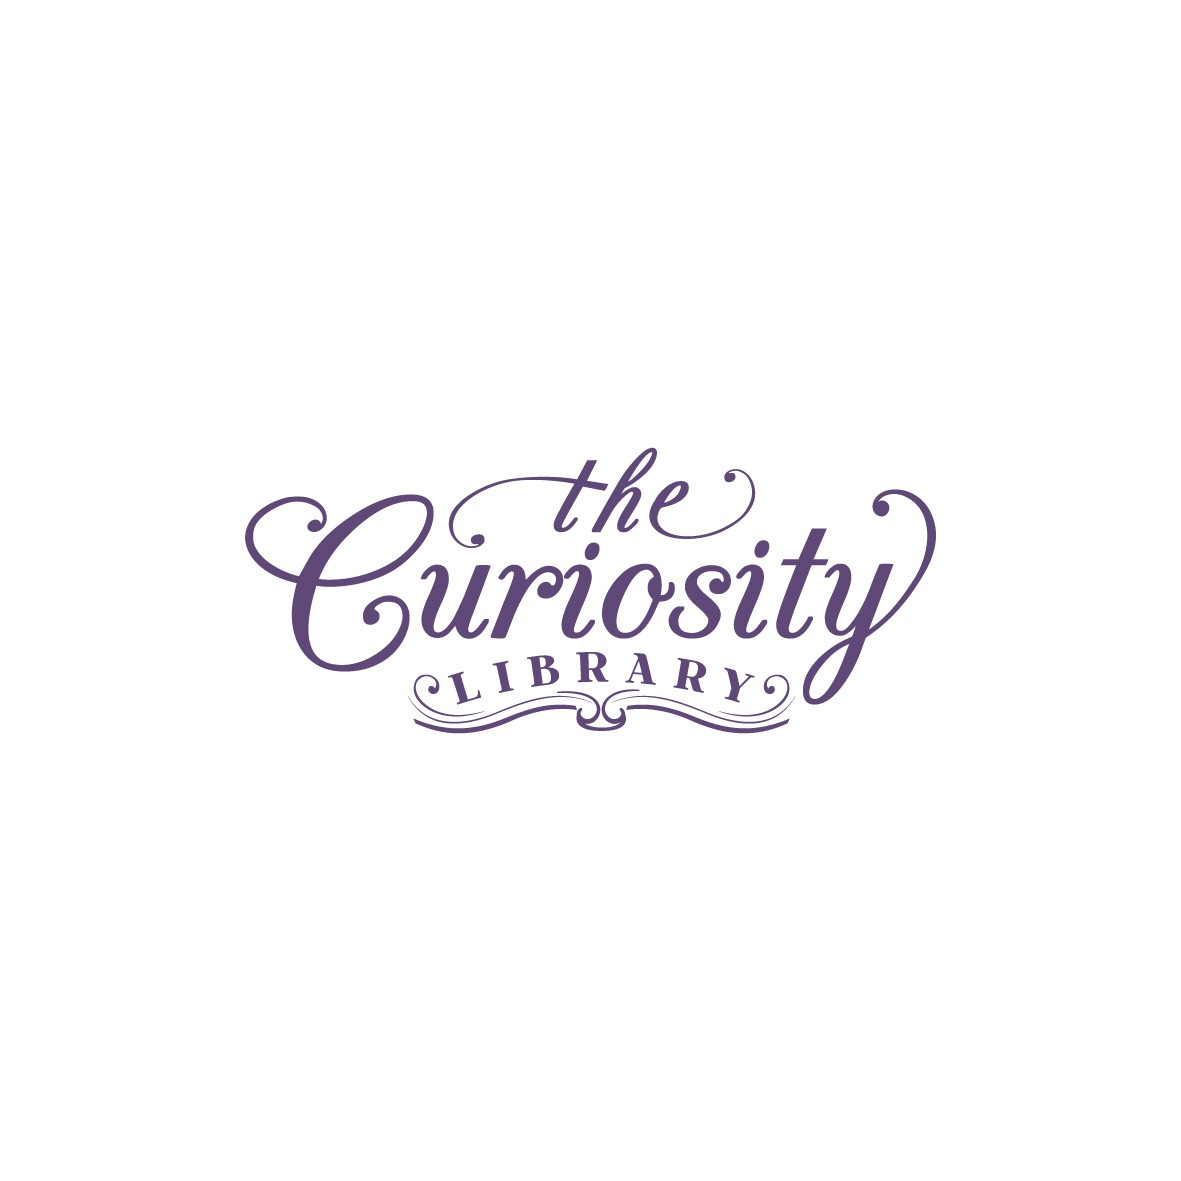 Create a possibility-filled logo for The Curiosity Library